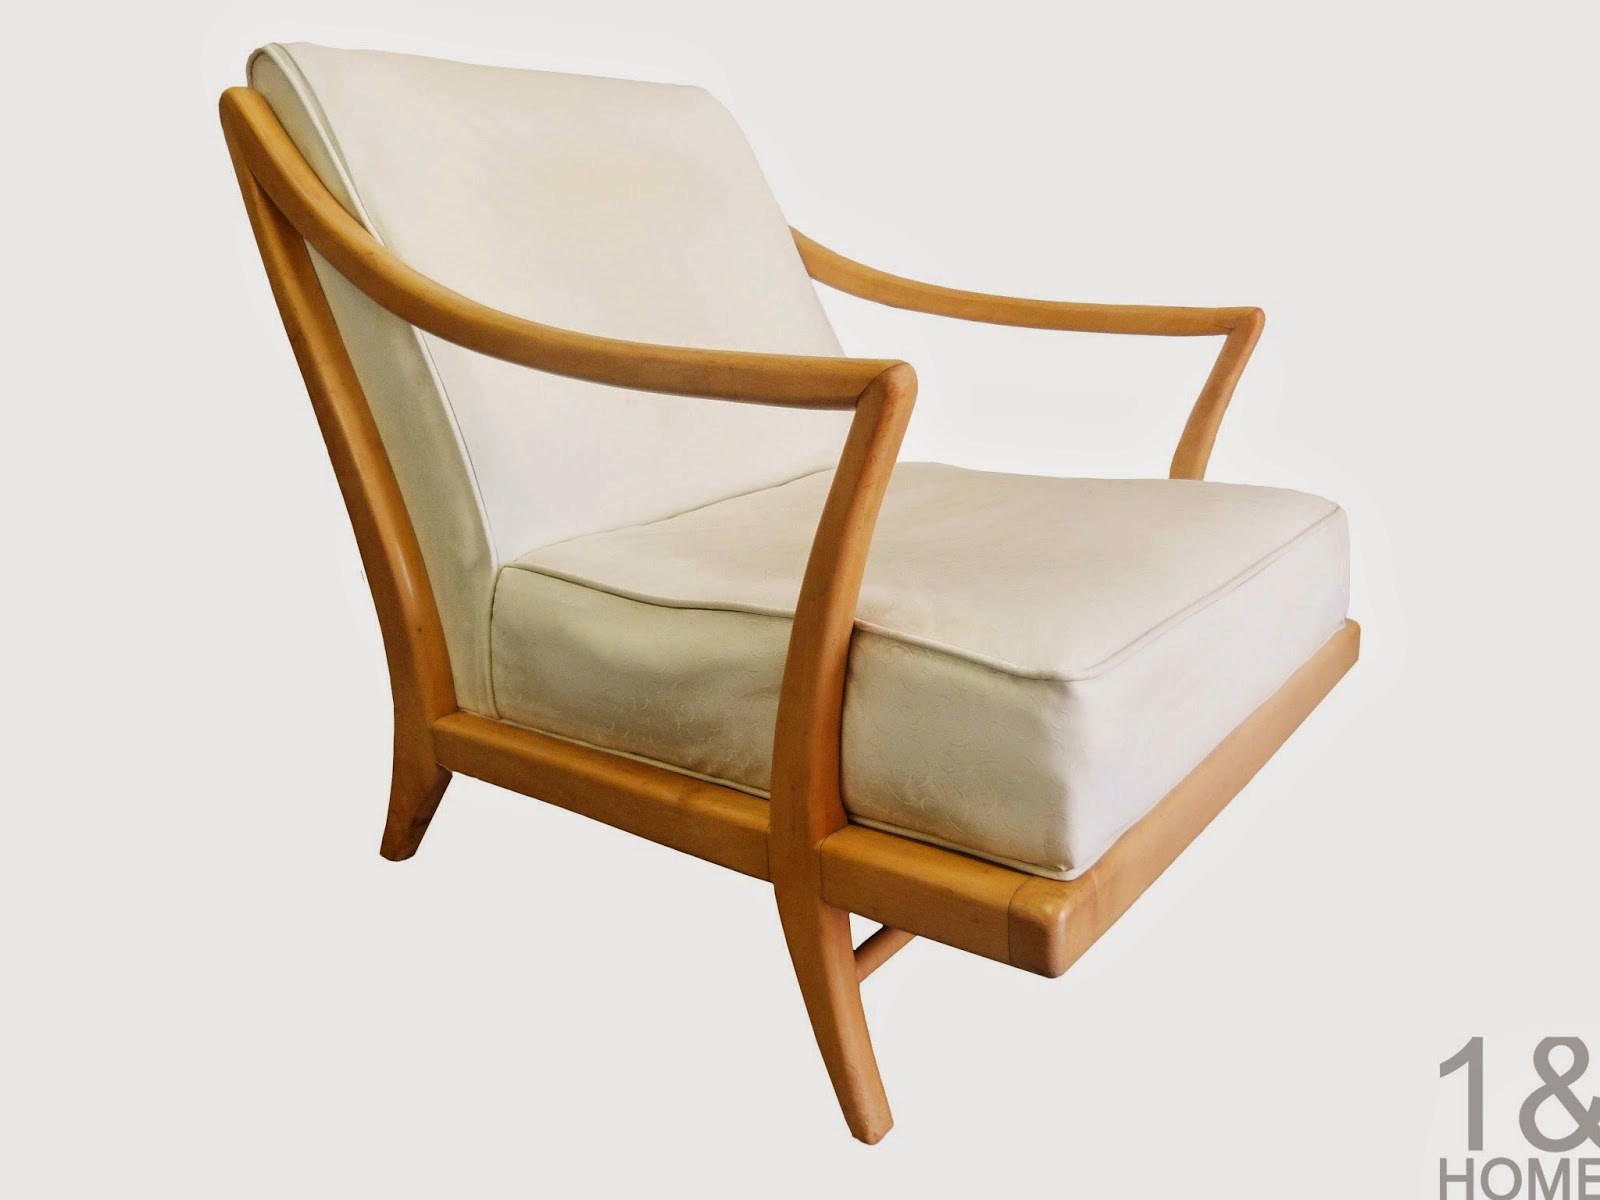 mid-century Modern, sculptural, Gio Ponti influenced, lounge chair in birch